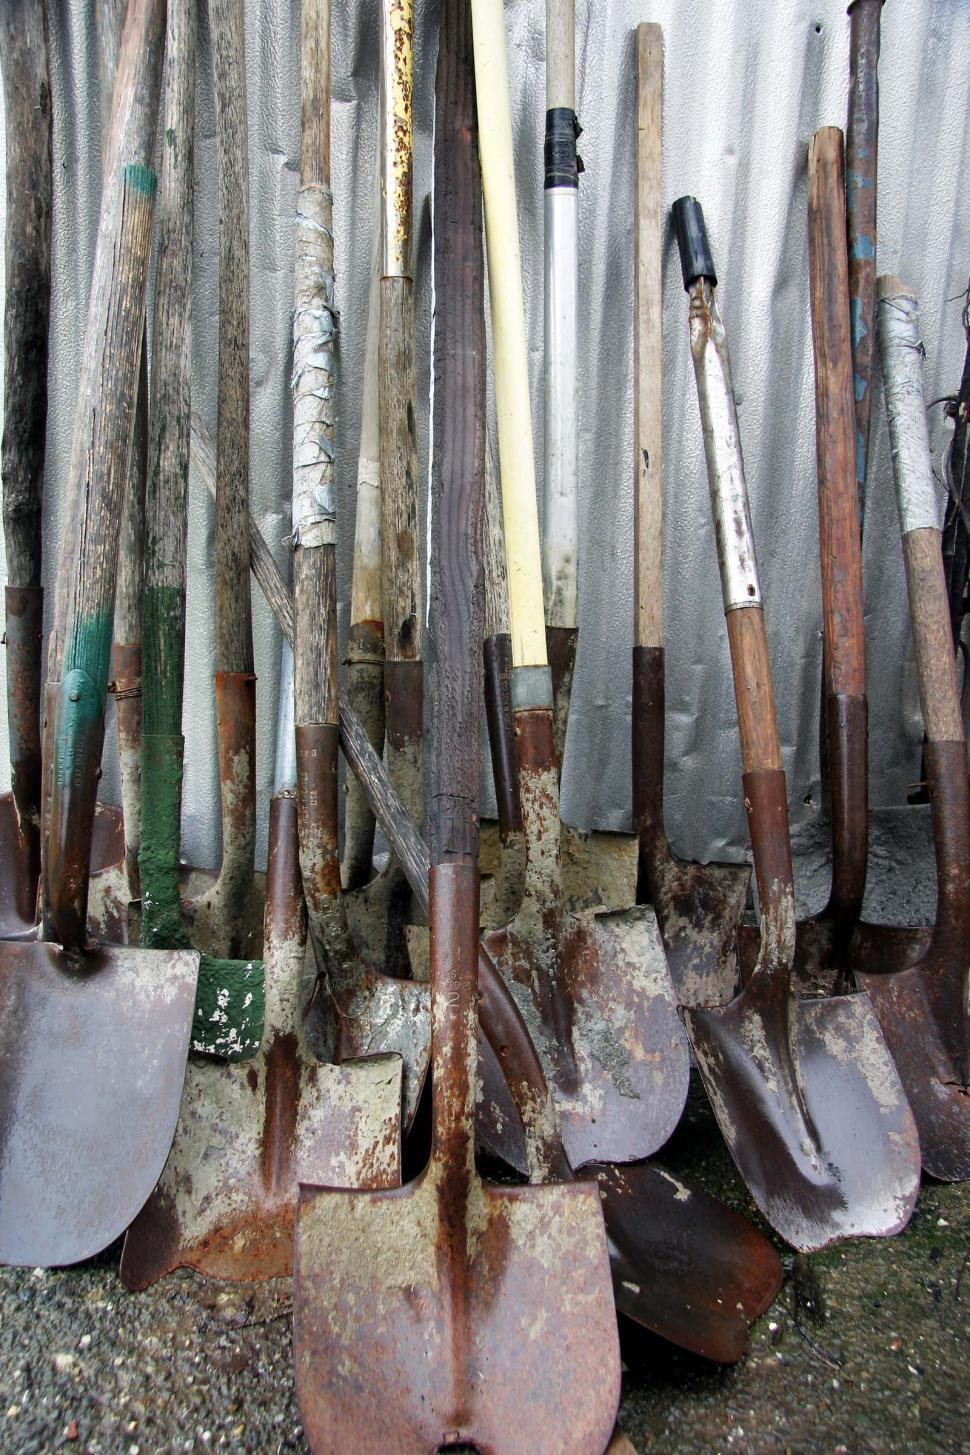 Download Free Stock Photo of Used shovels